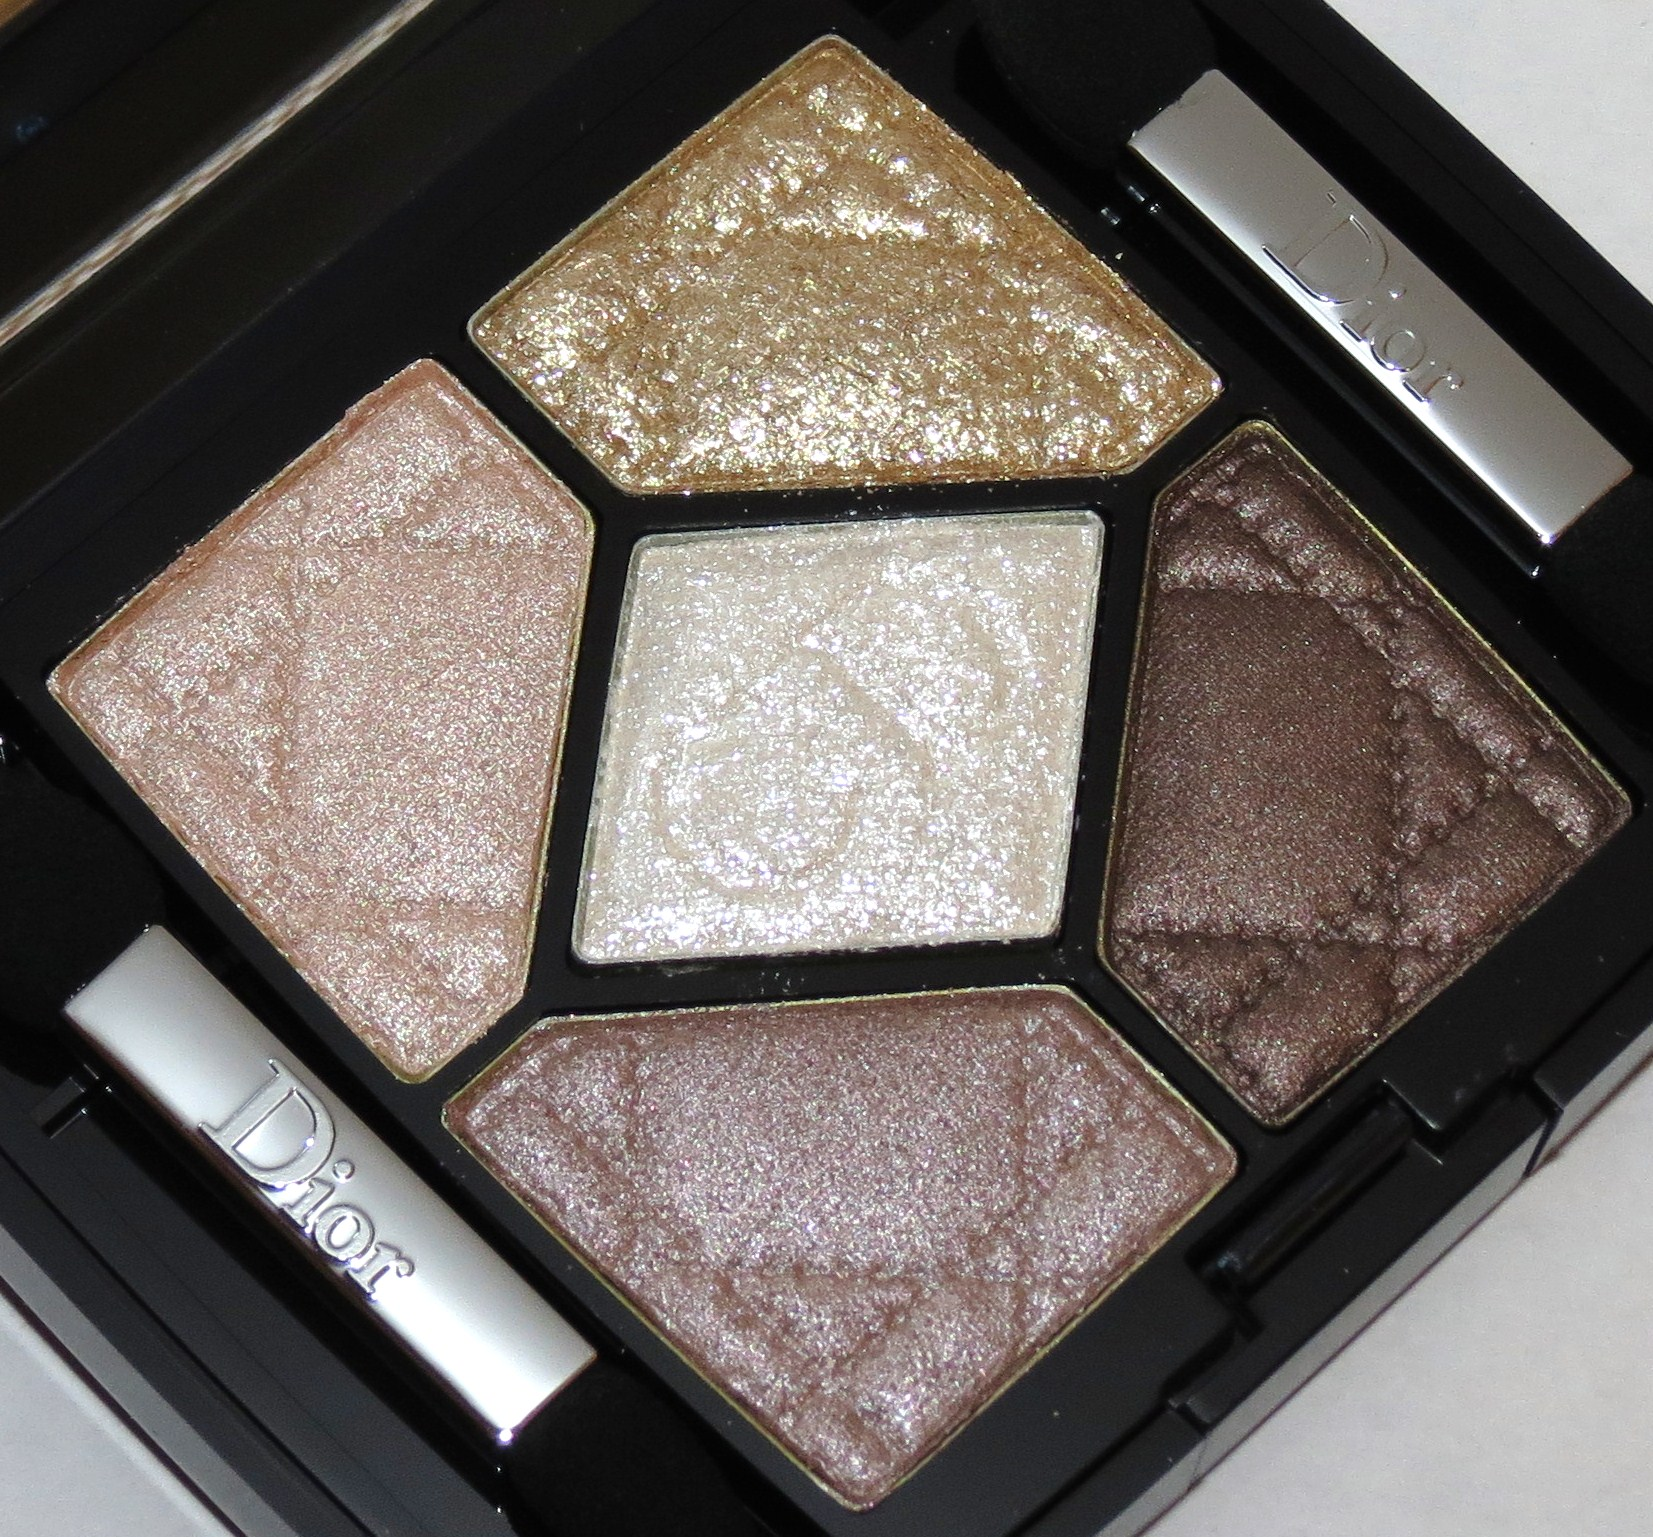 dior fairy golds 5 couleurs eyeshadow palette swatches review eotd grand bal collection. Black Bedroom Furniture Sets. Home Design Ideas